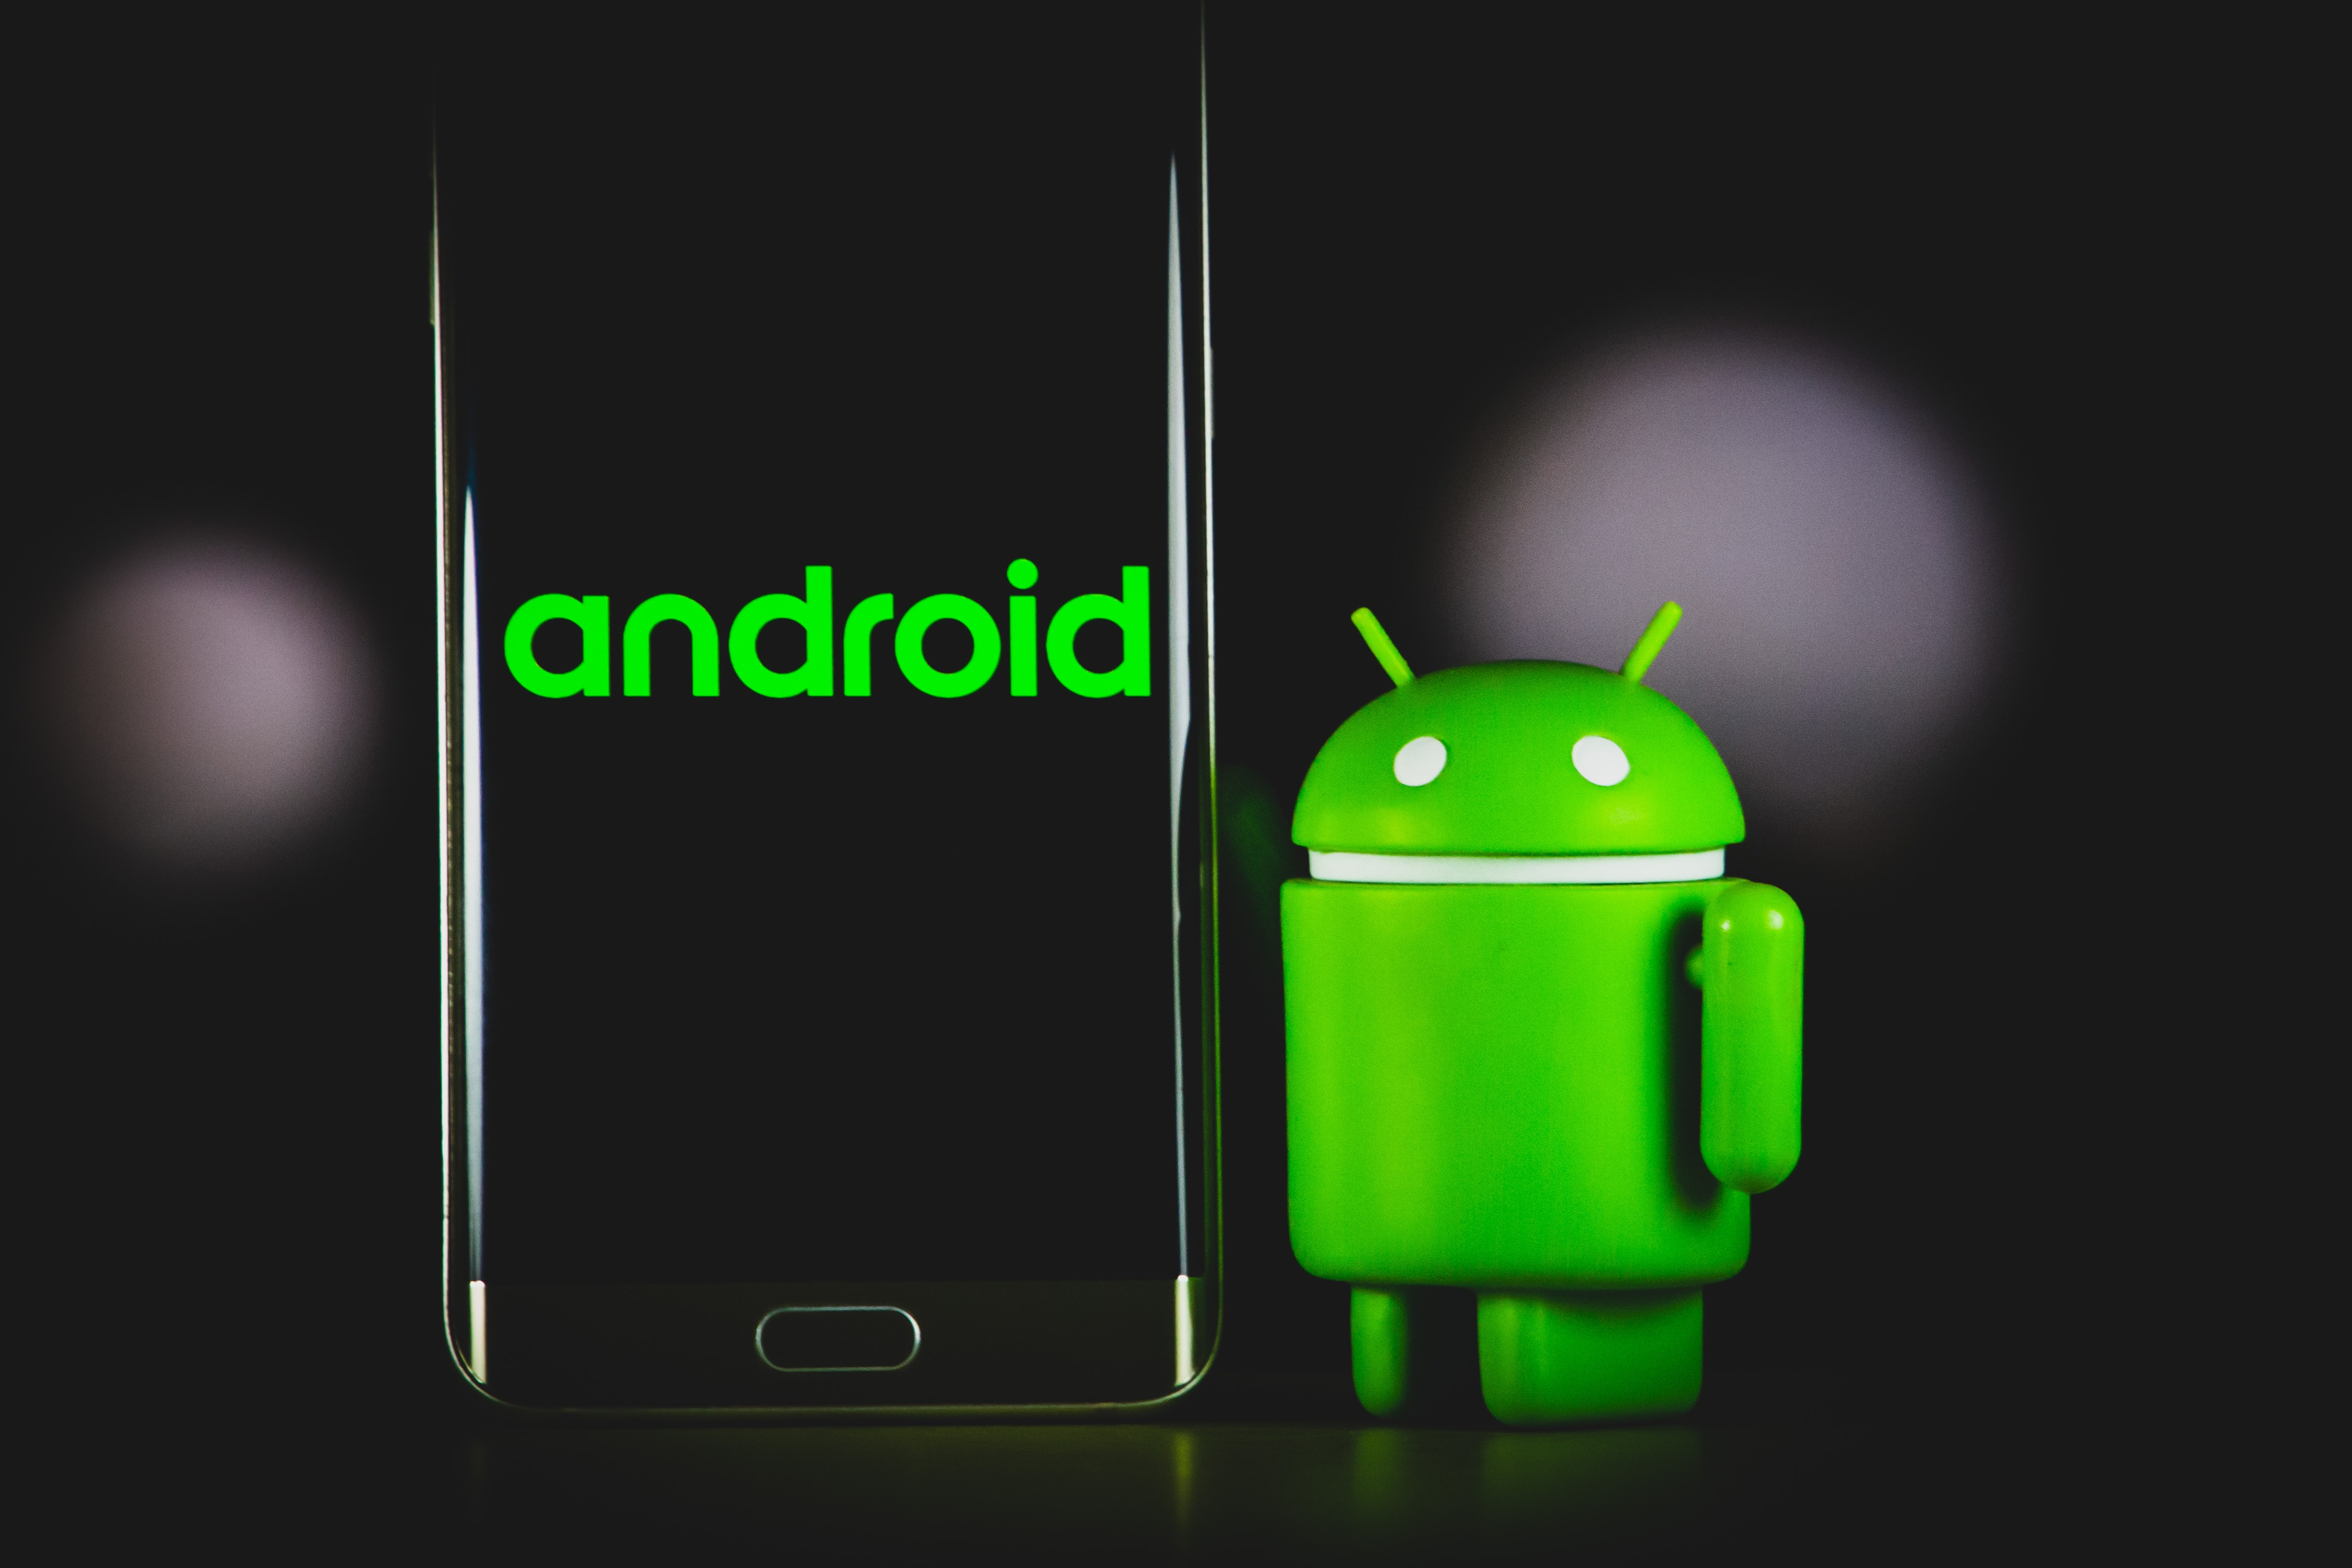 Image of the Android logo beside a smartphone against a black background.